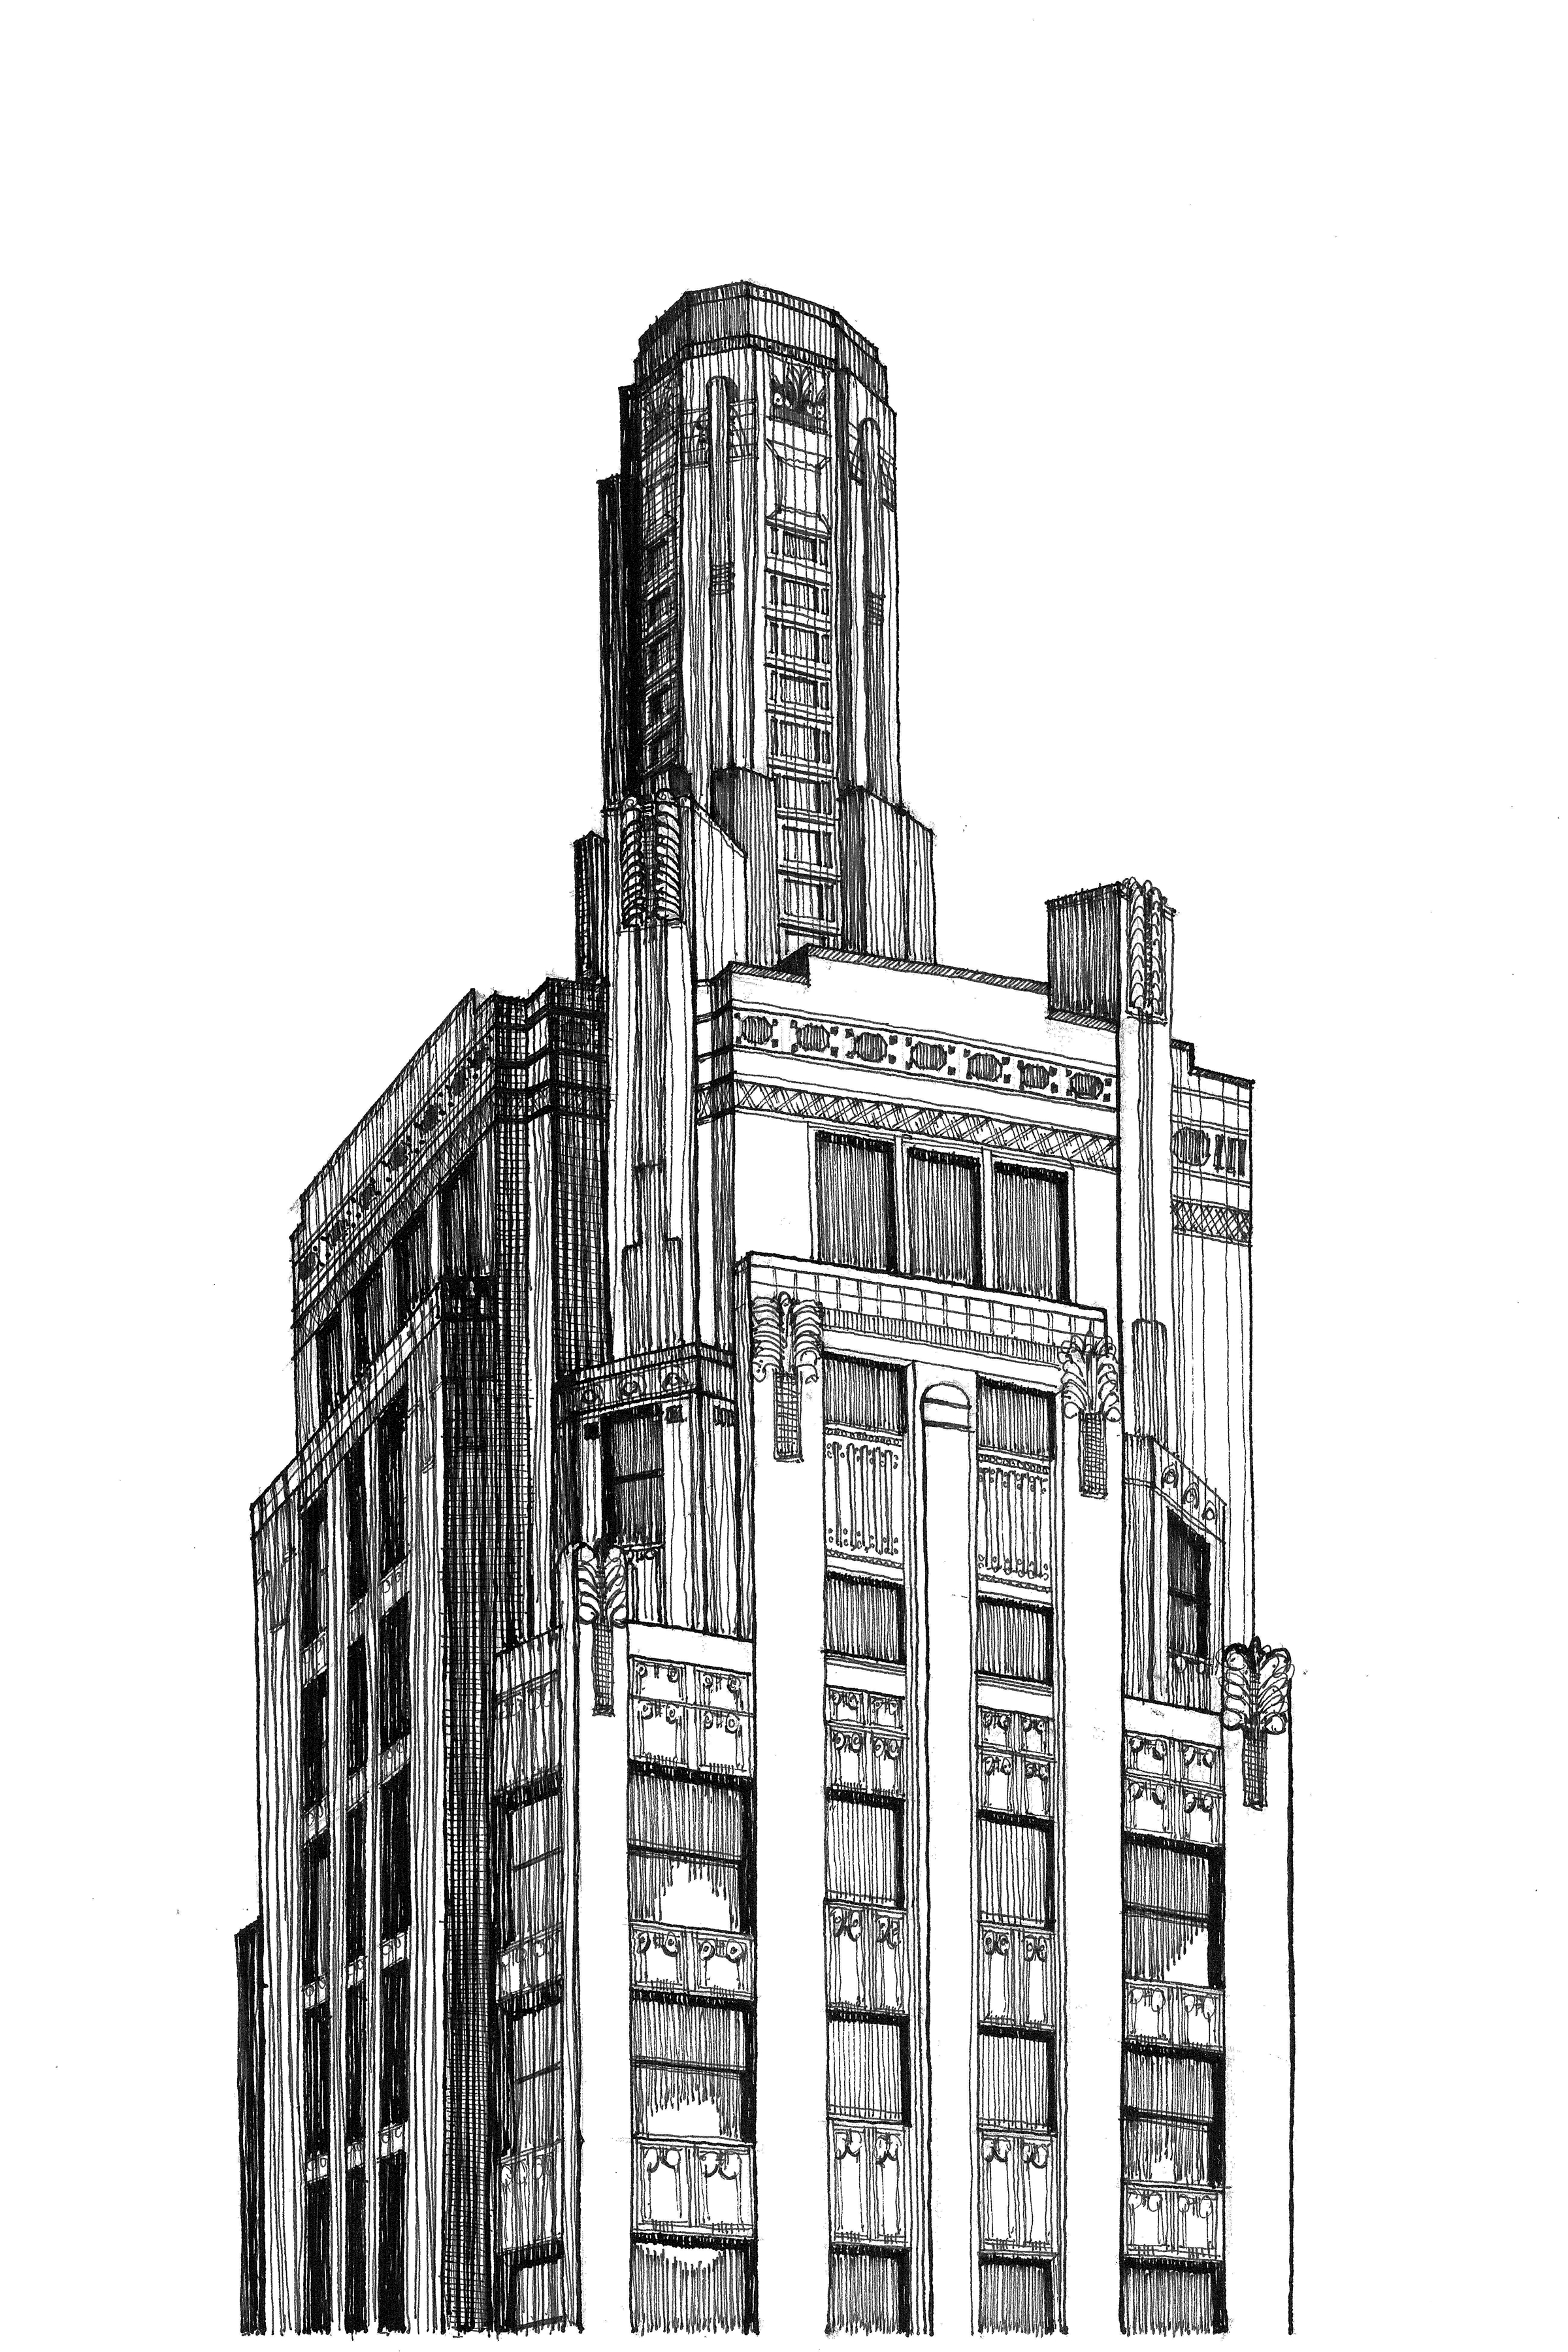 Carbide and Carbon Building - Copyright Andrew Banks 2015.jpg